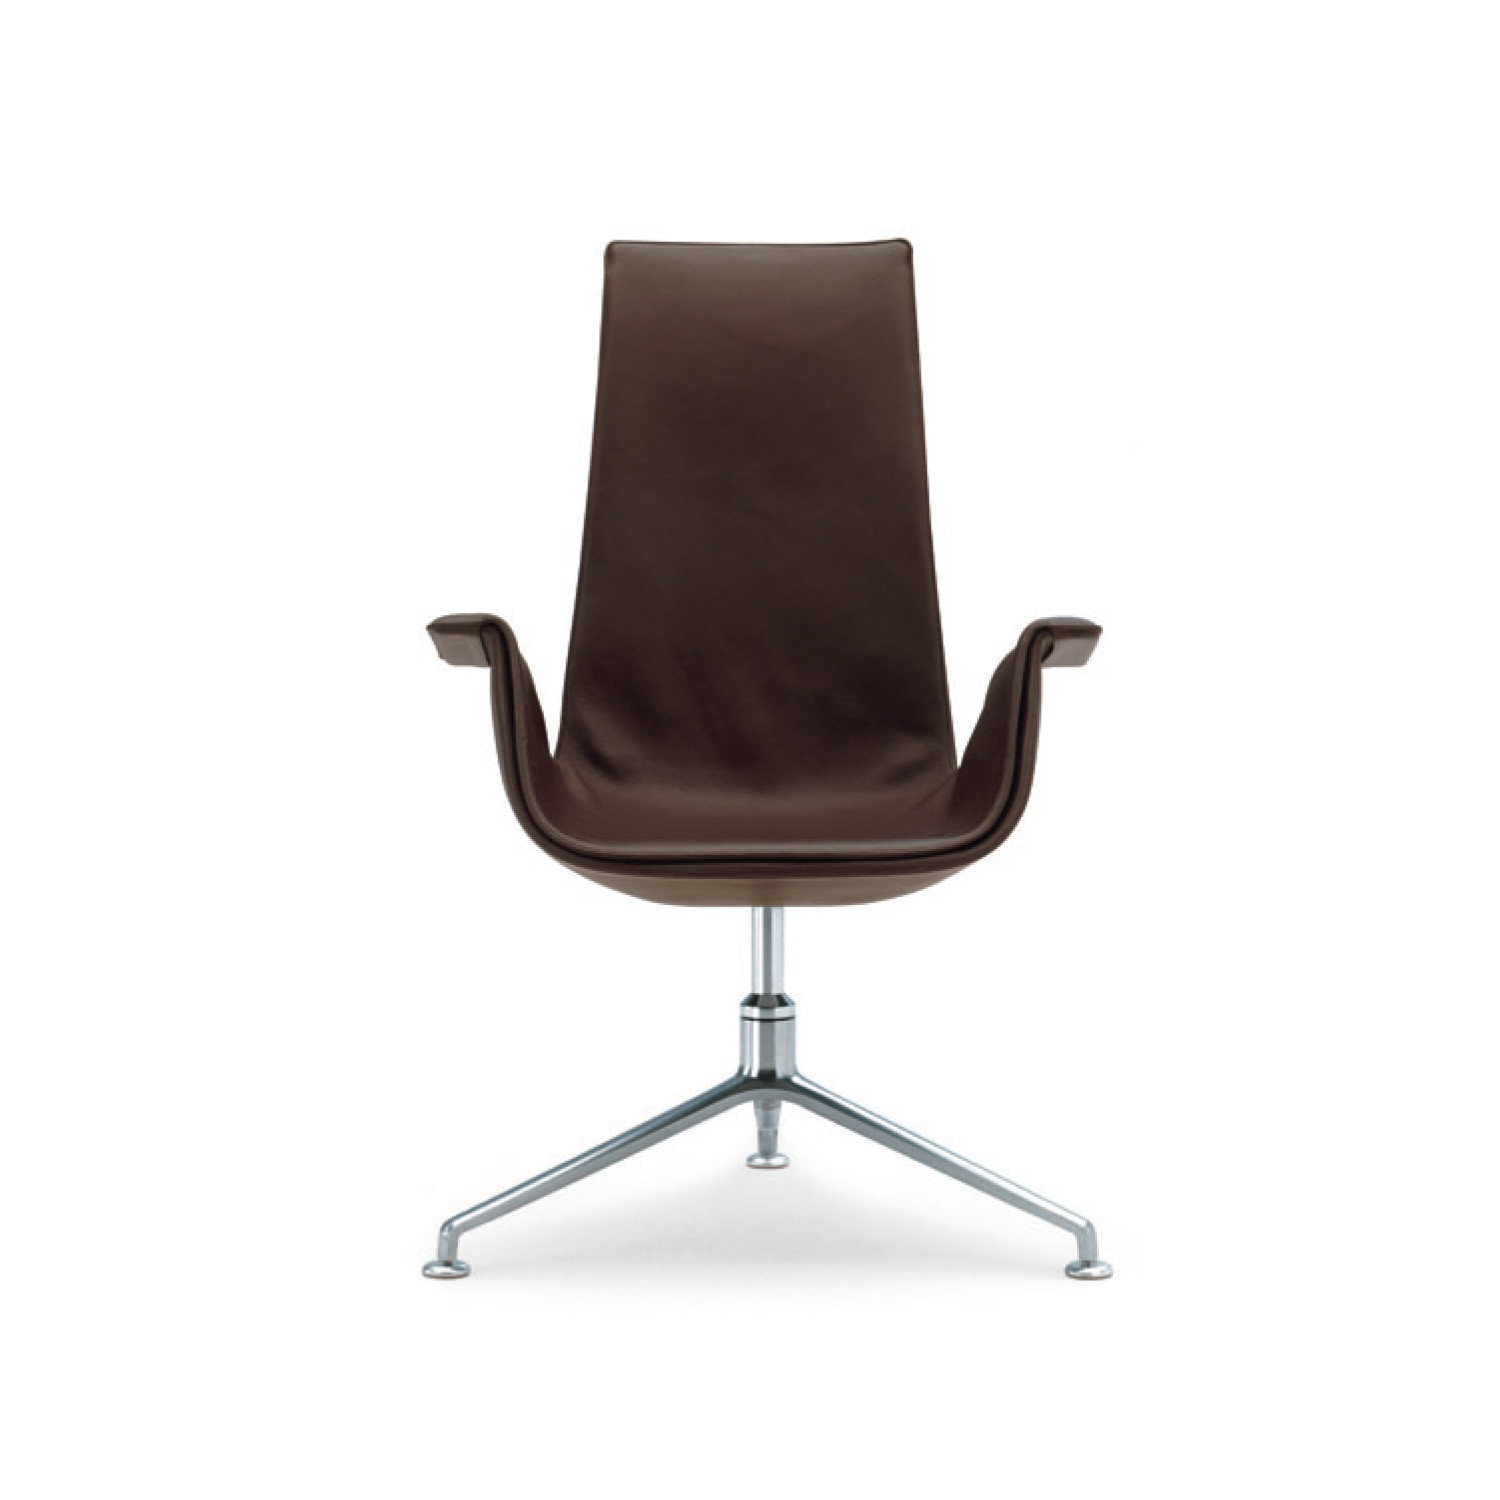 FK Lounge Chair by Walter Knoll